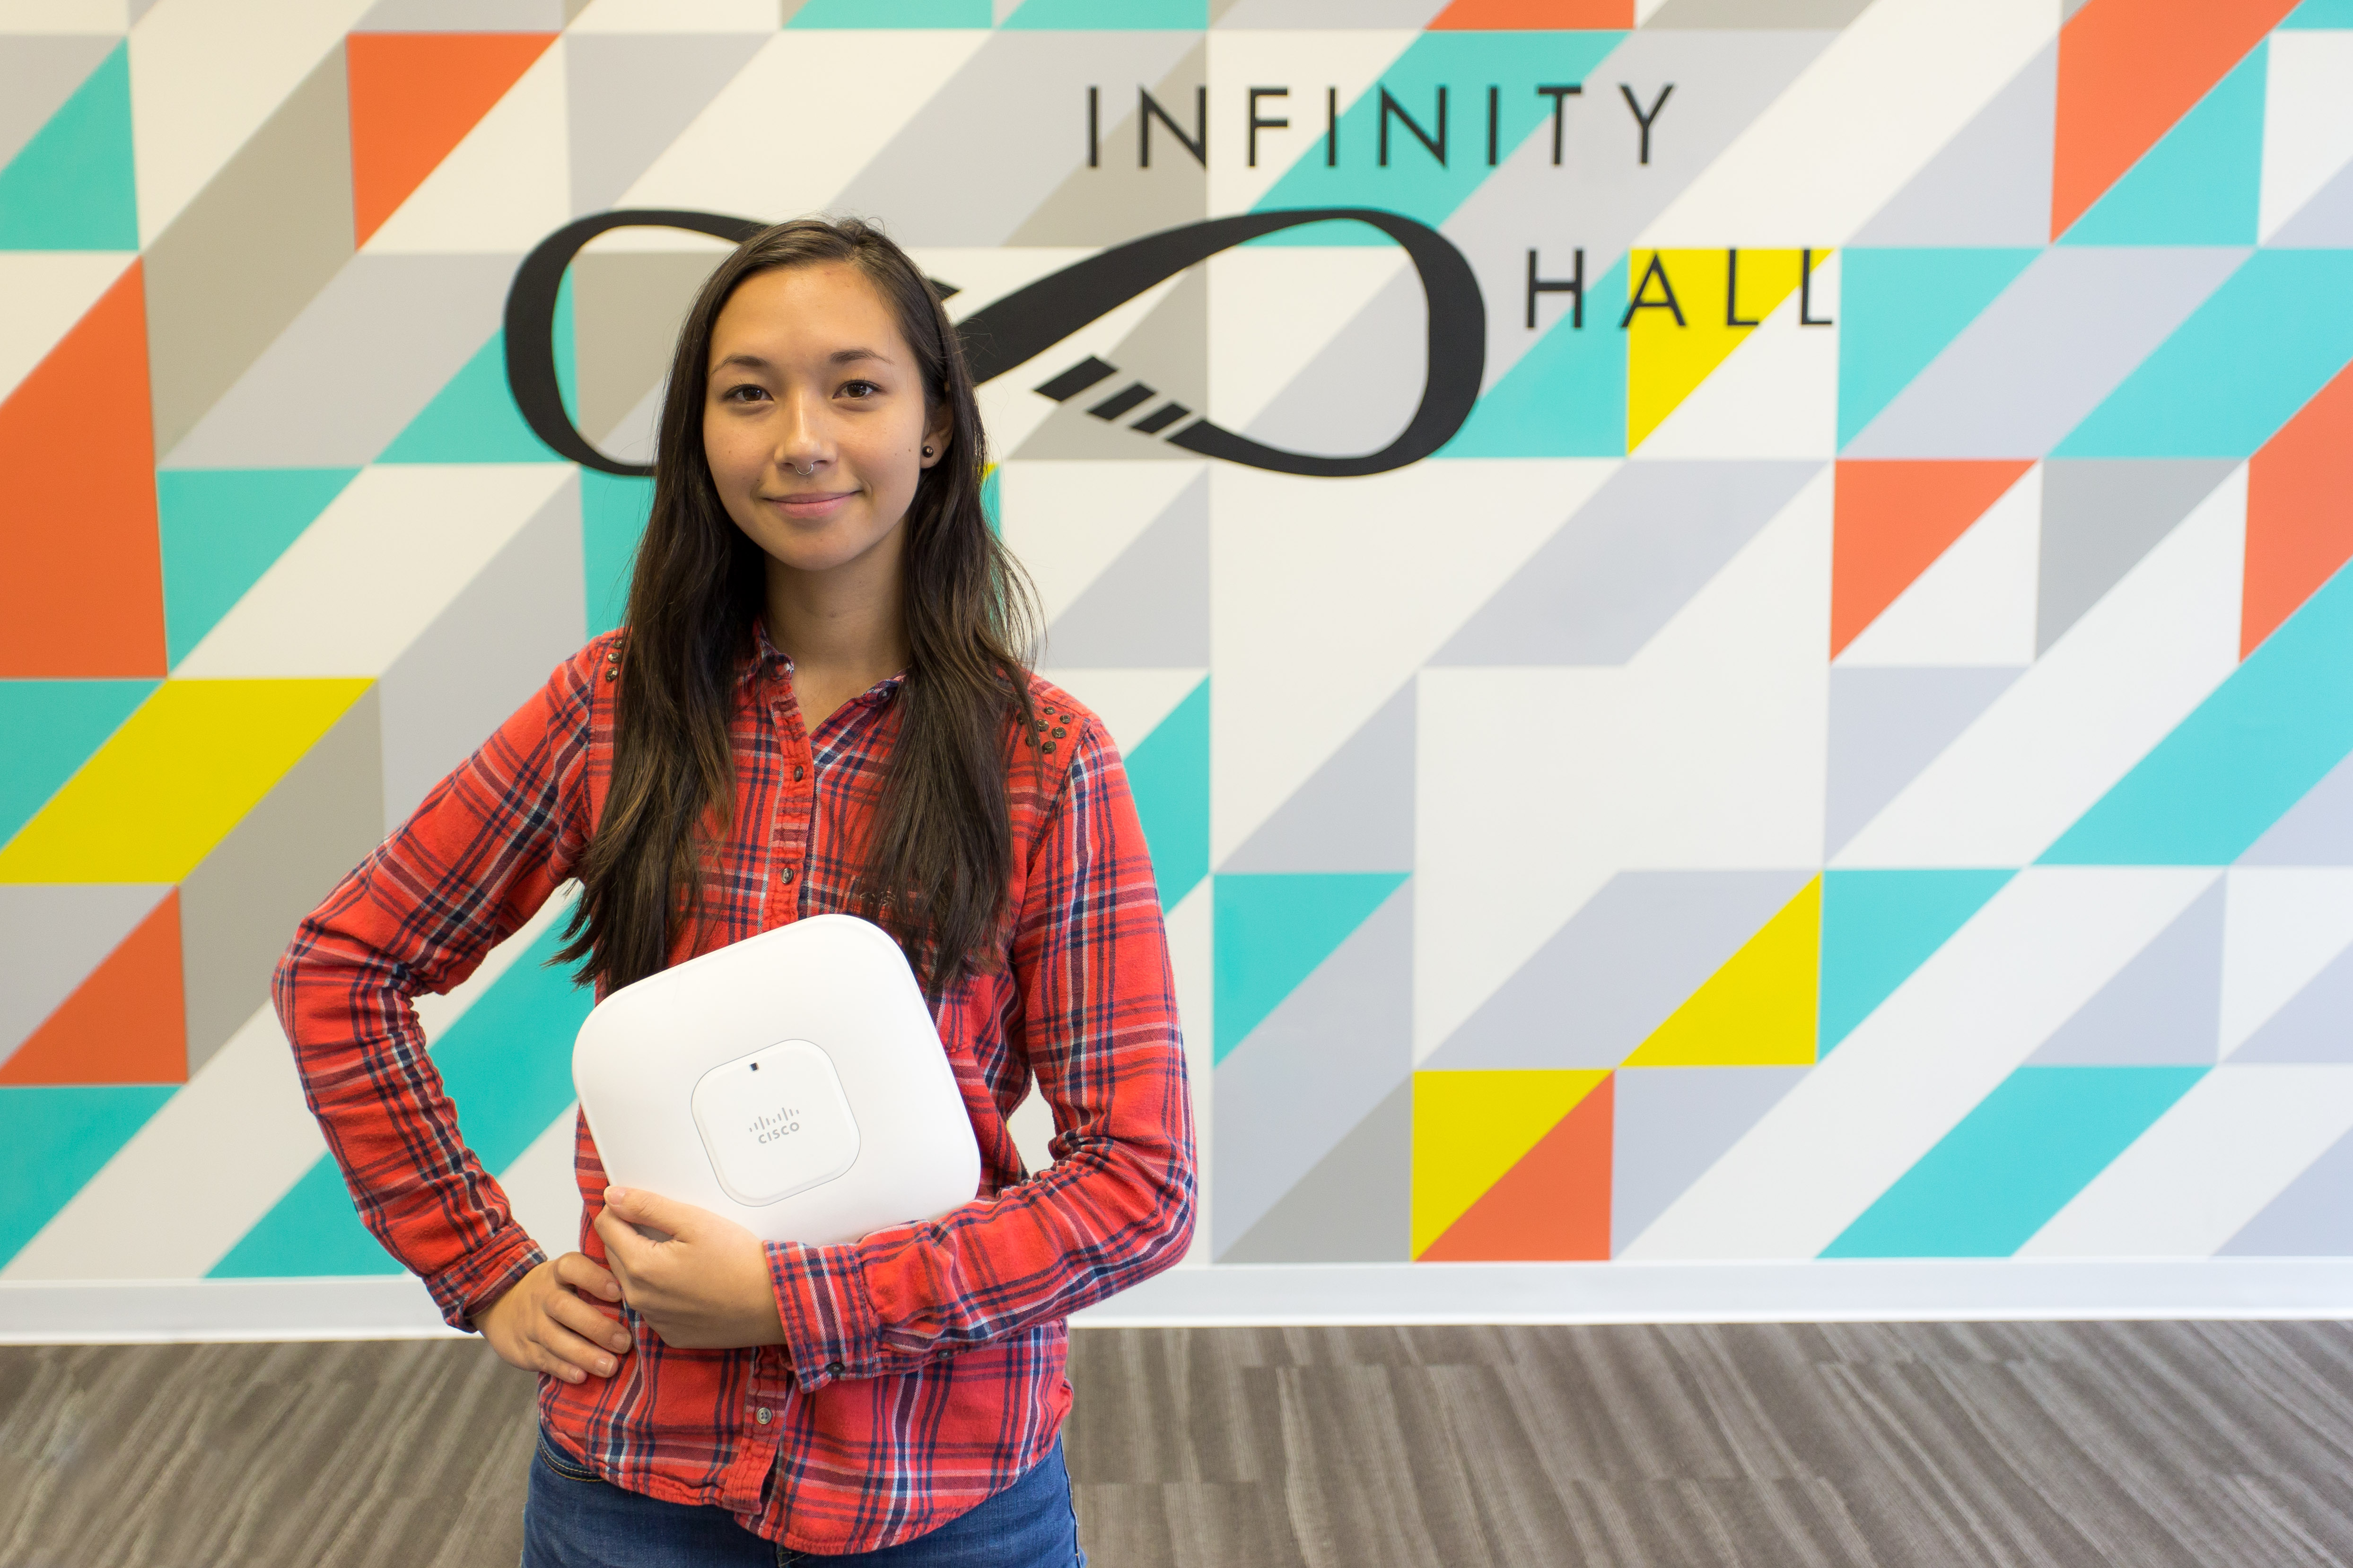 Annie holding a white router at Infinity Hall